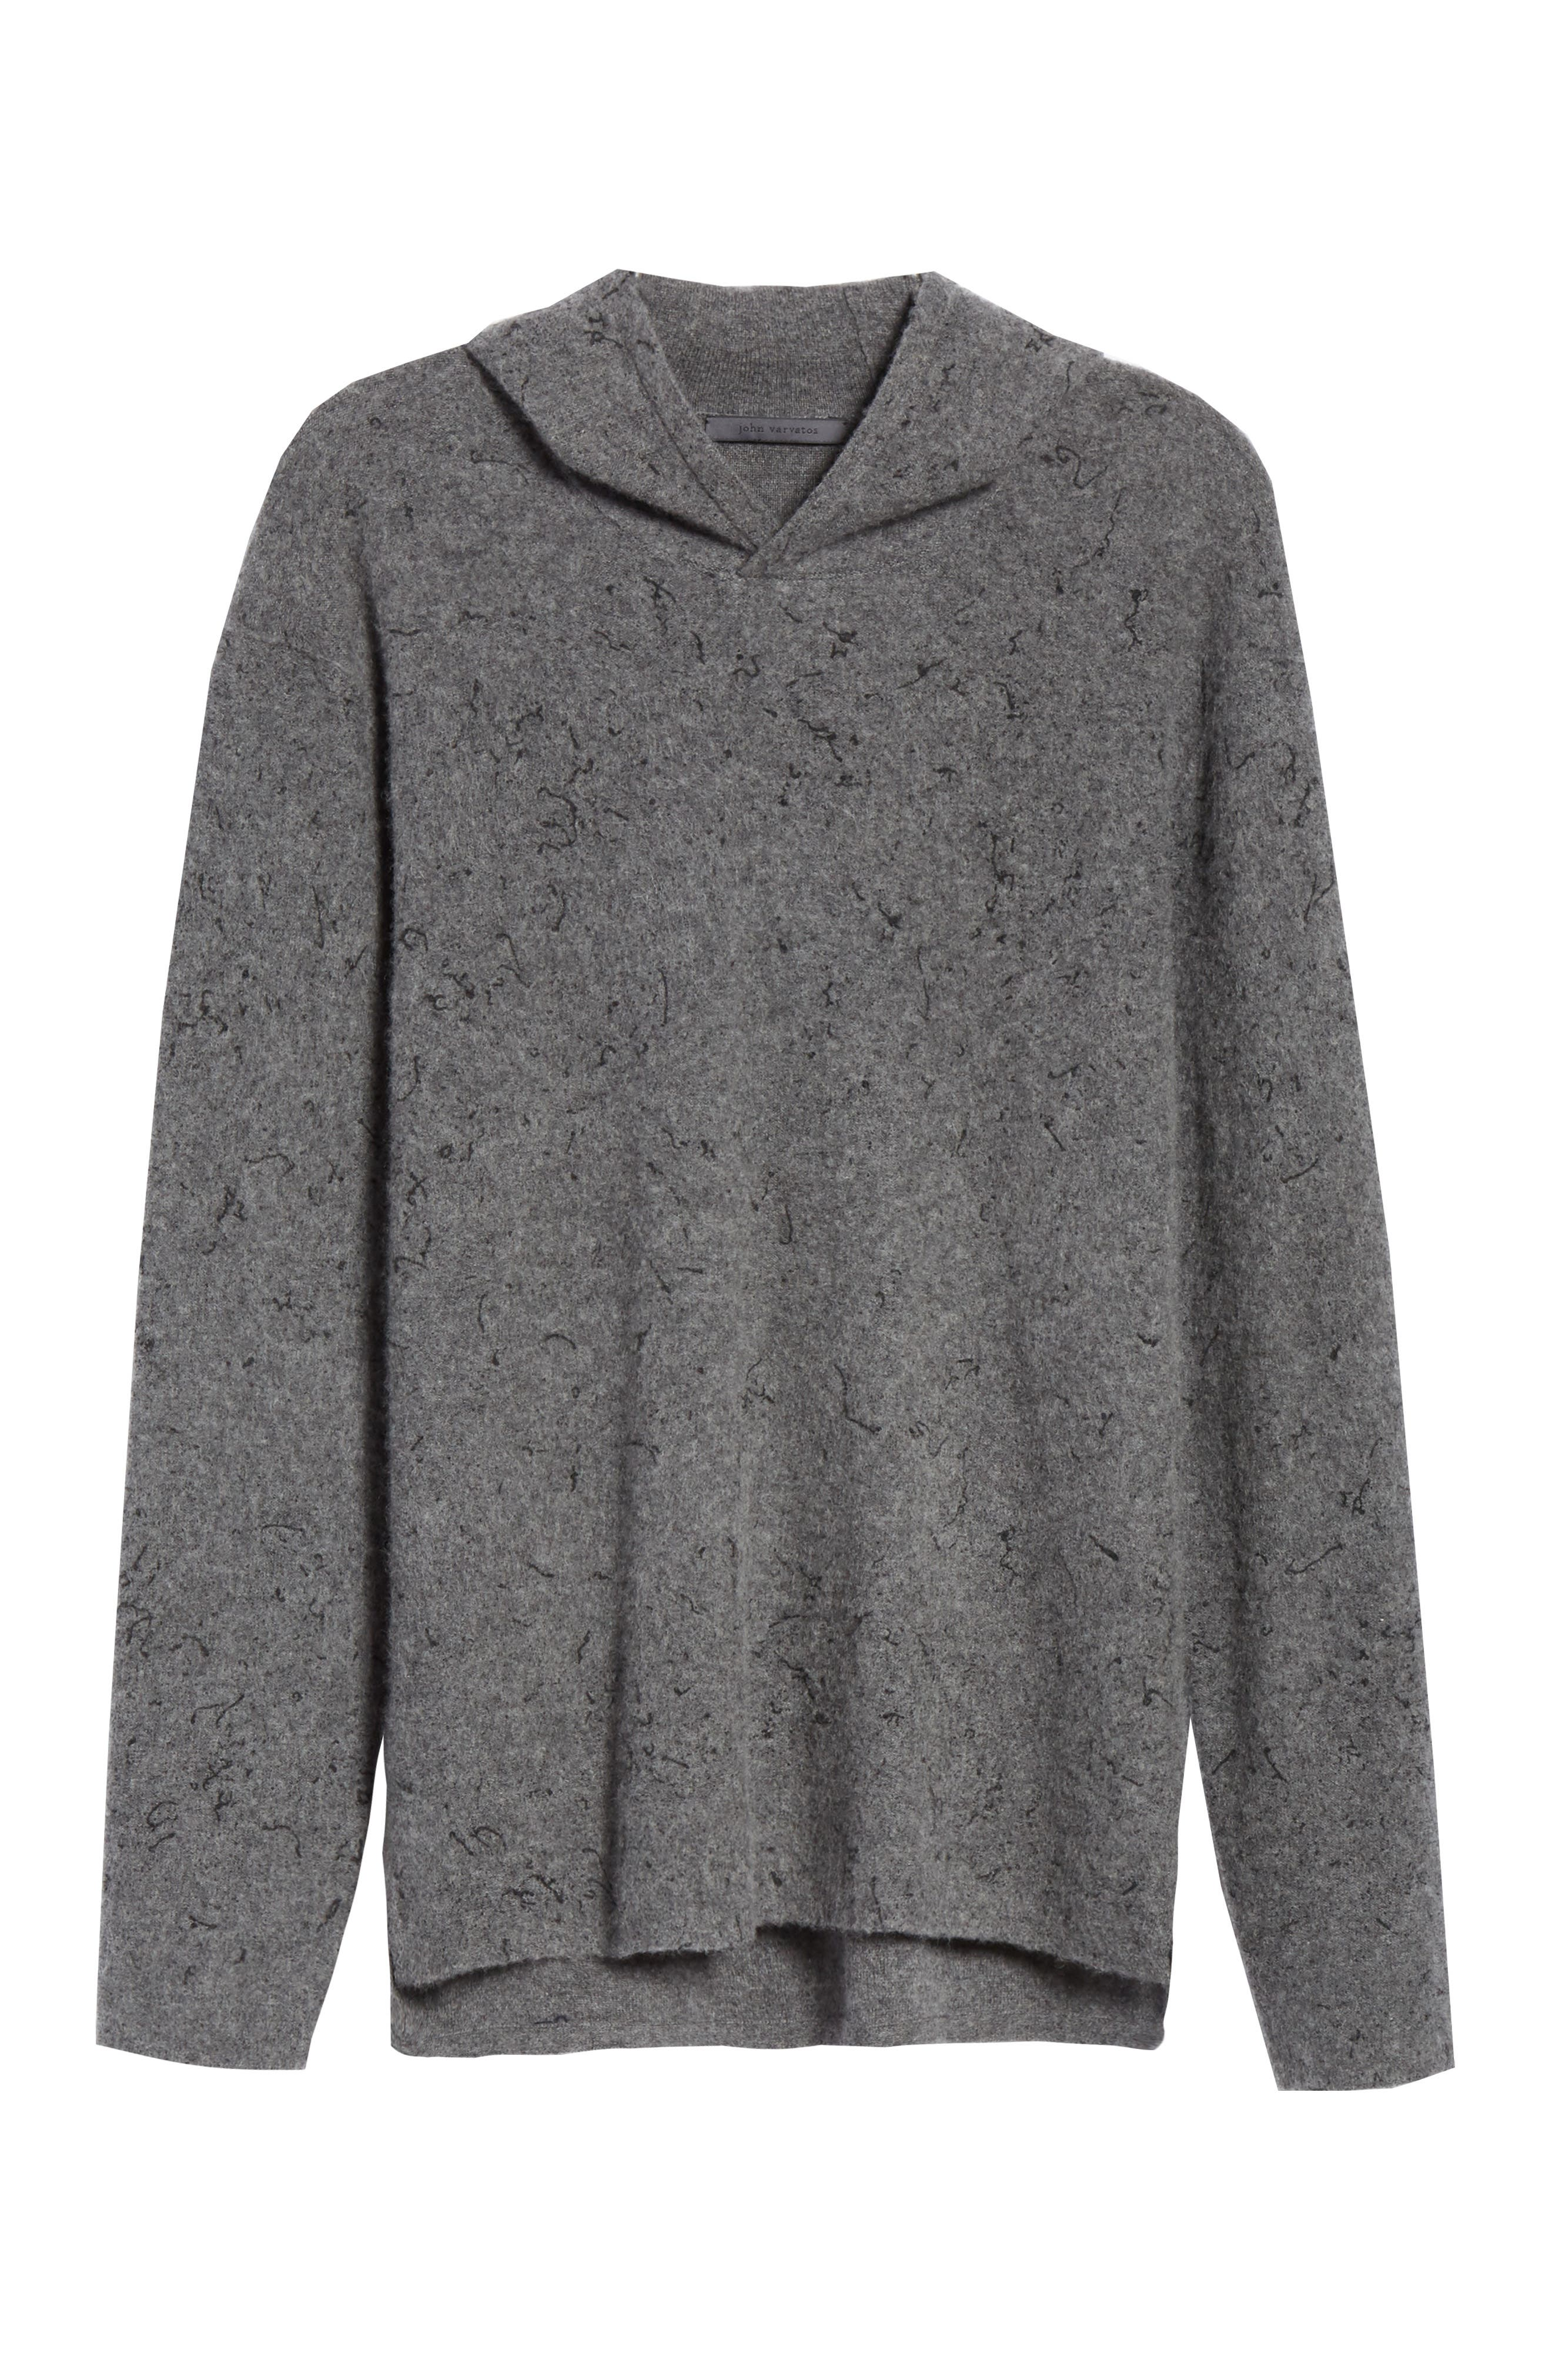 Wool Cashmere Hooded Sweater,                             Alternate thumbnail 6, color,                             SMOKE HEATHER